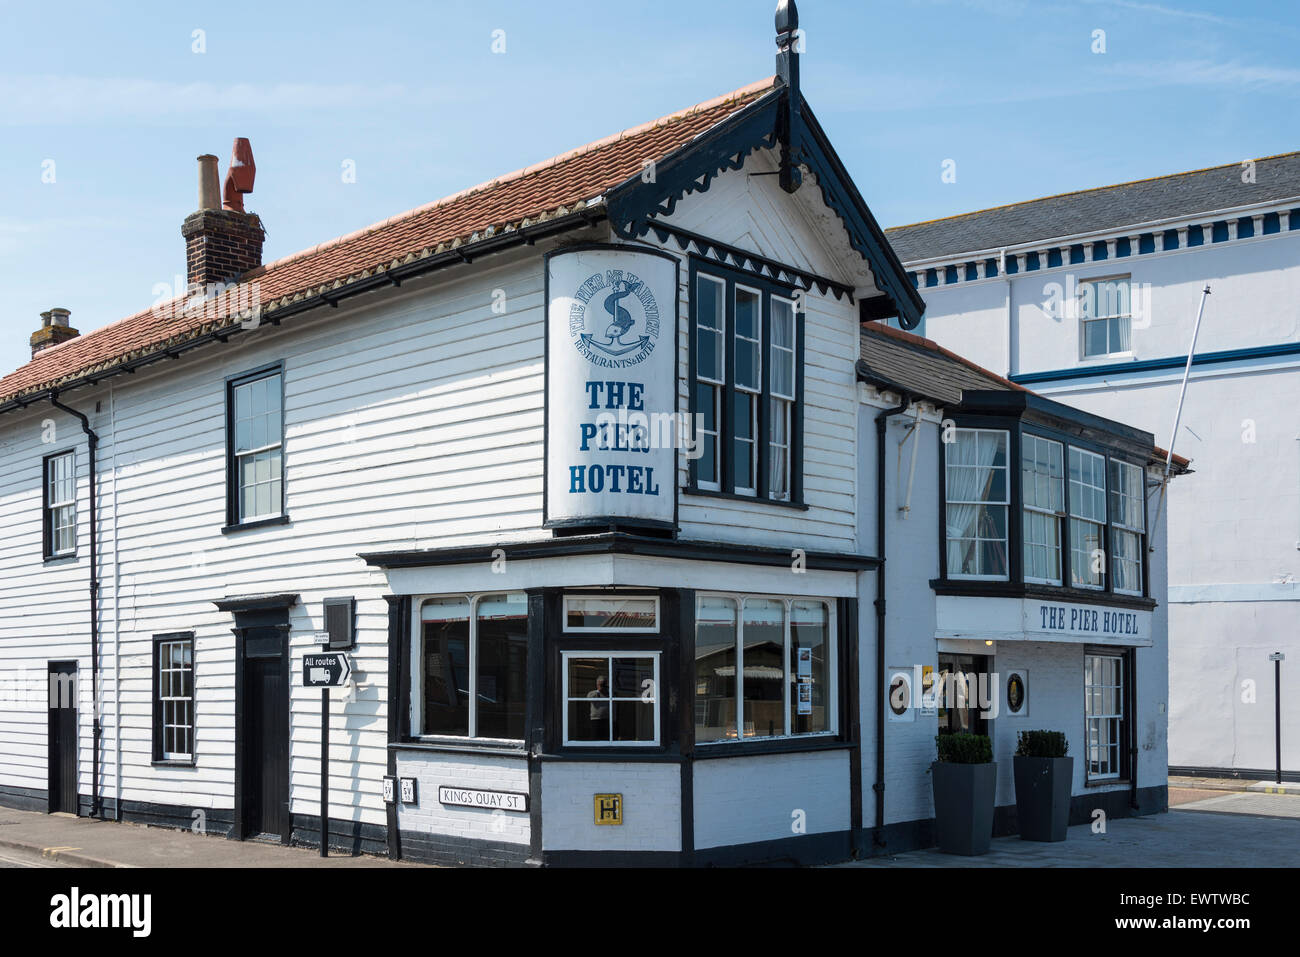 19th Century The Pier Hotel, King's Quay Street, Harwich, Essex, England, United Kingdom - Stock Image